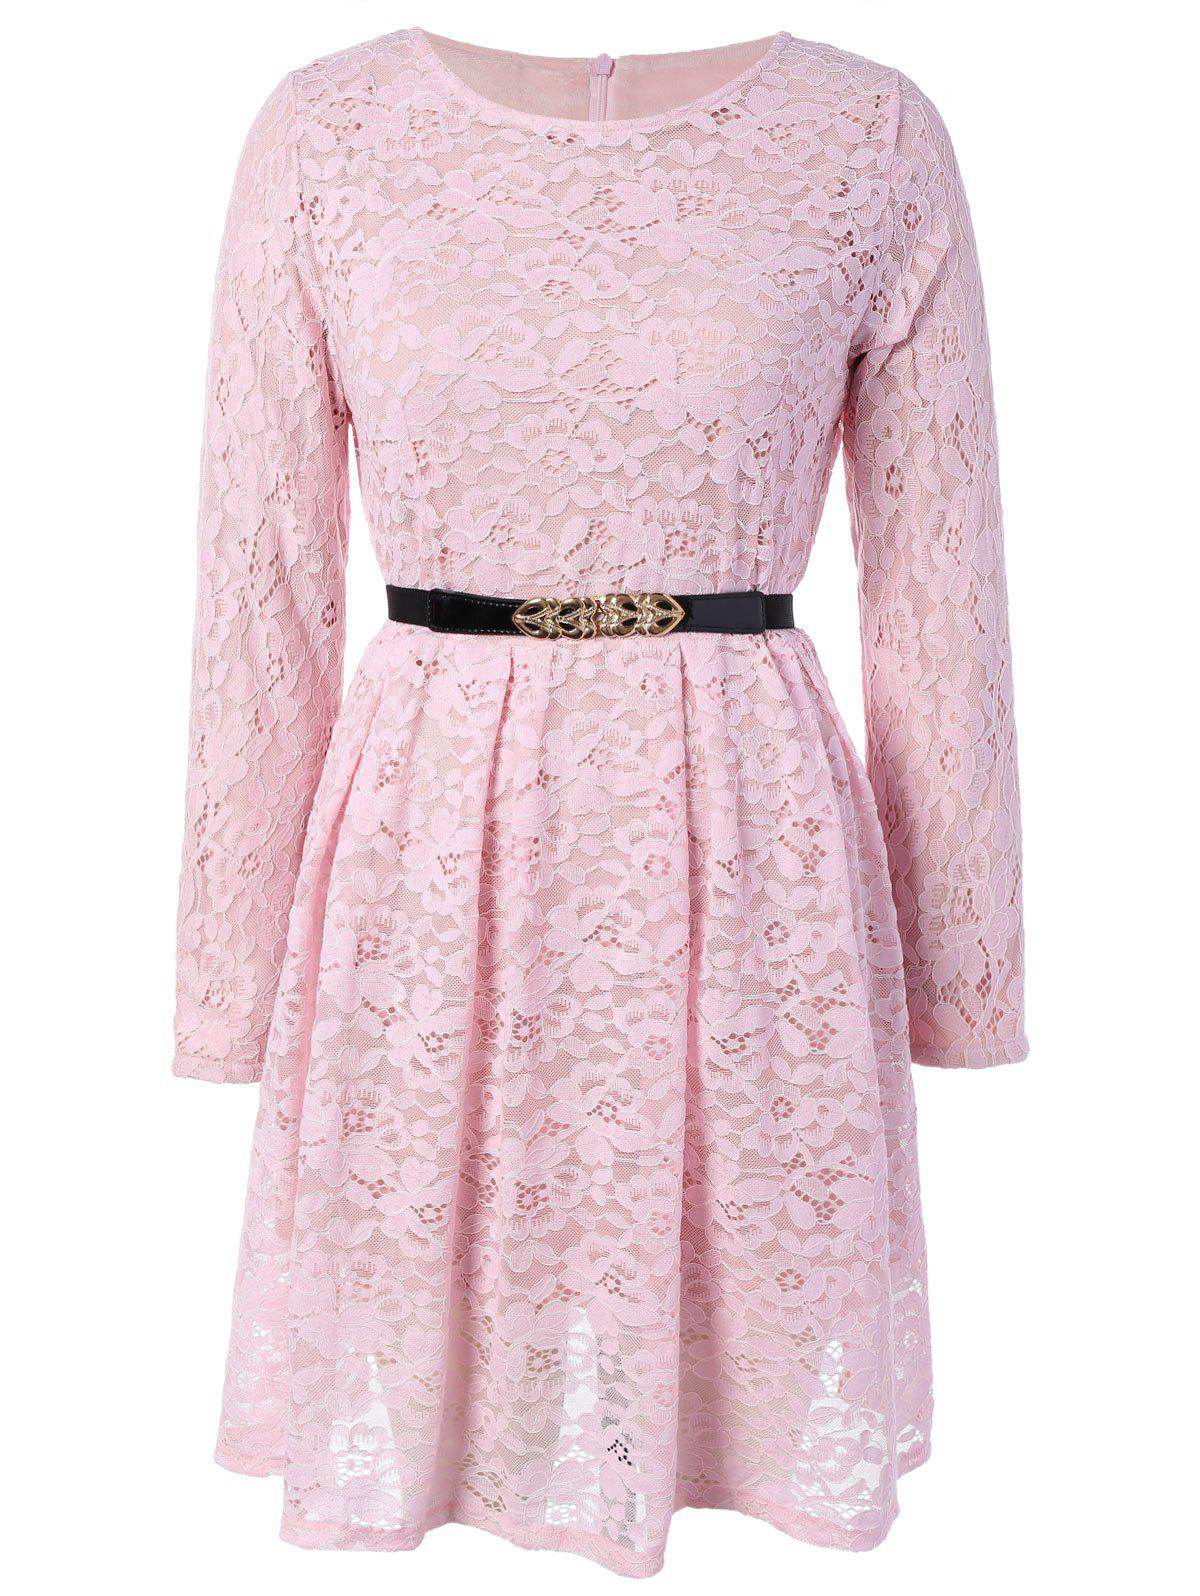 Fit and Flare Lace Long Sleeve Dress lace overlay fit and flare dress